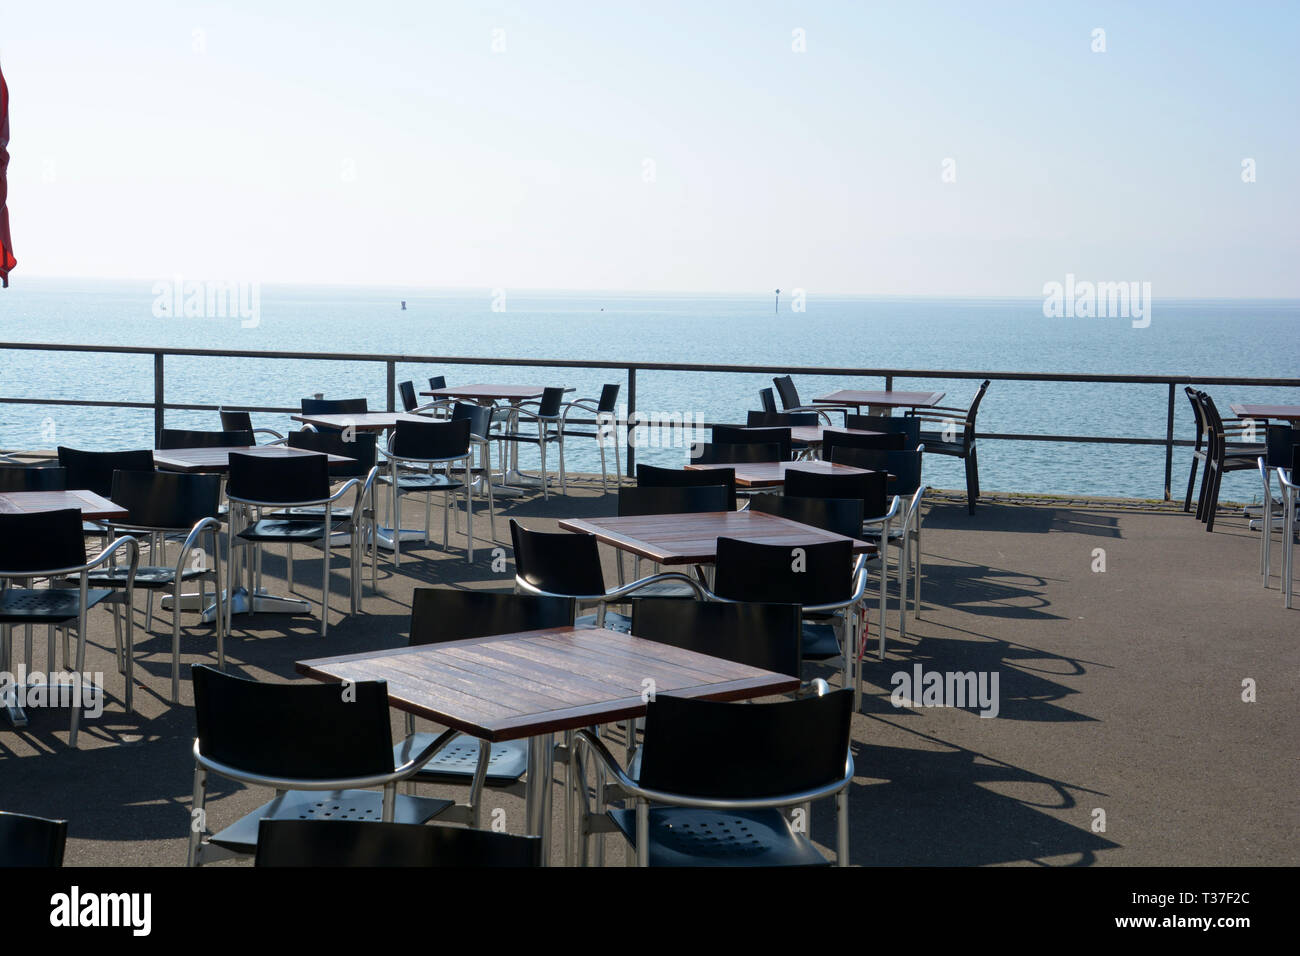 empty cafe in early spring at lake constance in germany, tables and chairs without persons on the lakeside promenade against lake constance and bouys  Stock Photo